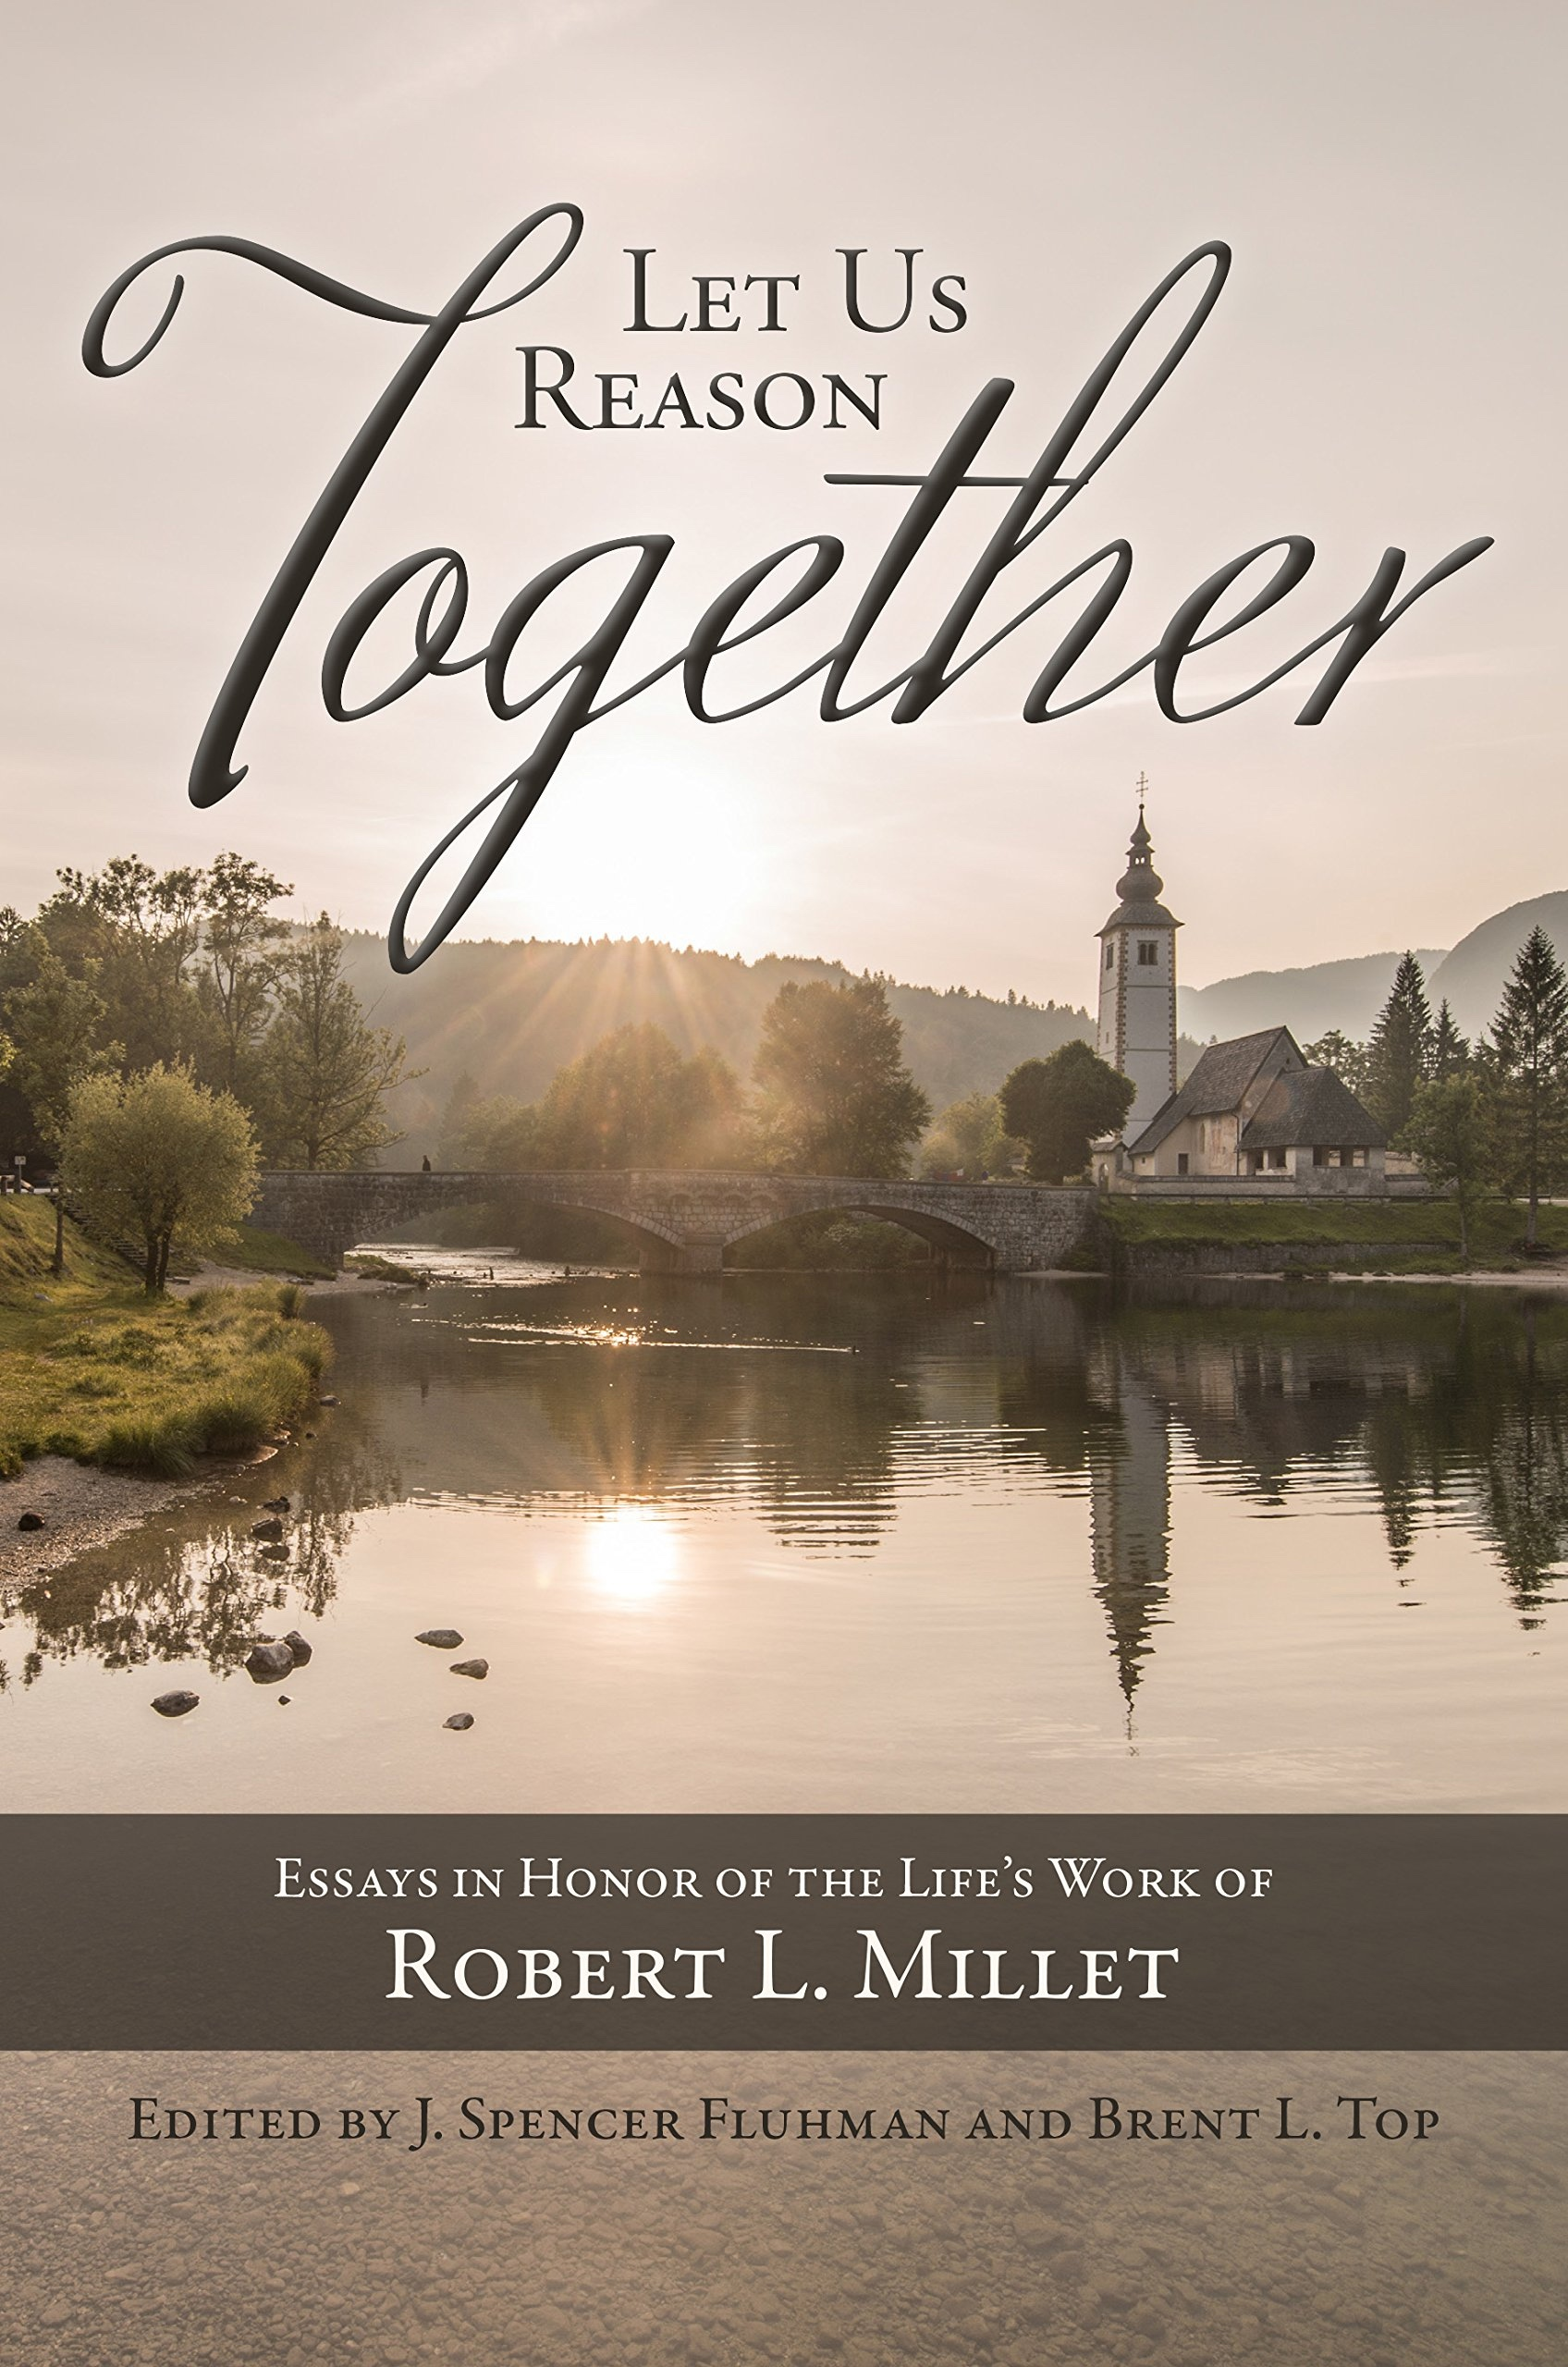 Let Us Reason Together;   Essays in Honor of the Life's Work of Robert Millet, Fluhman, J. Spencer & Brent L. Top